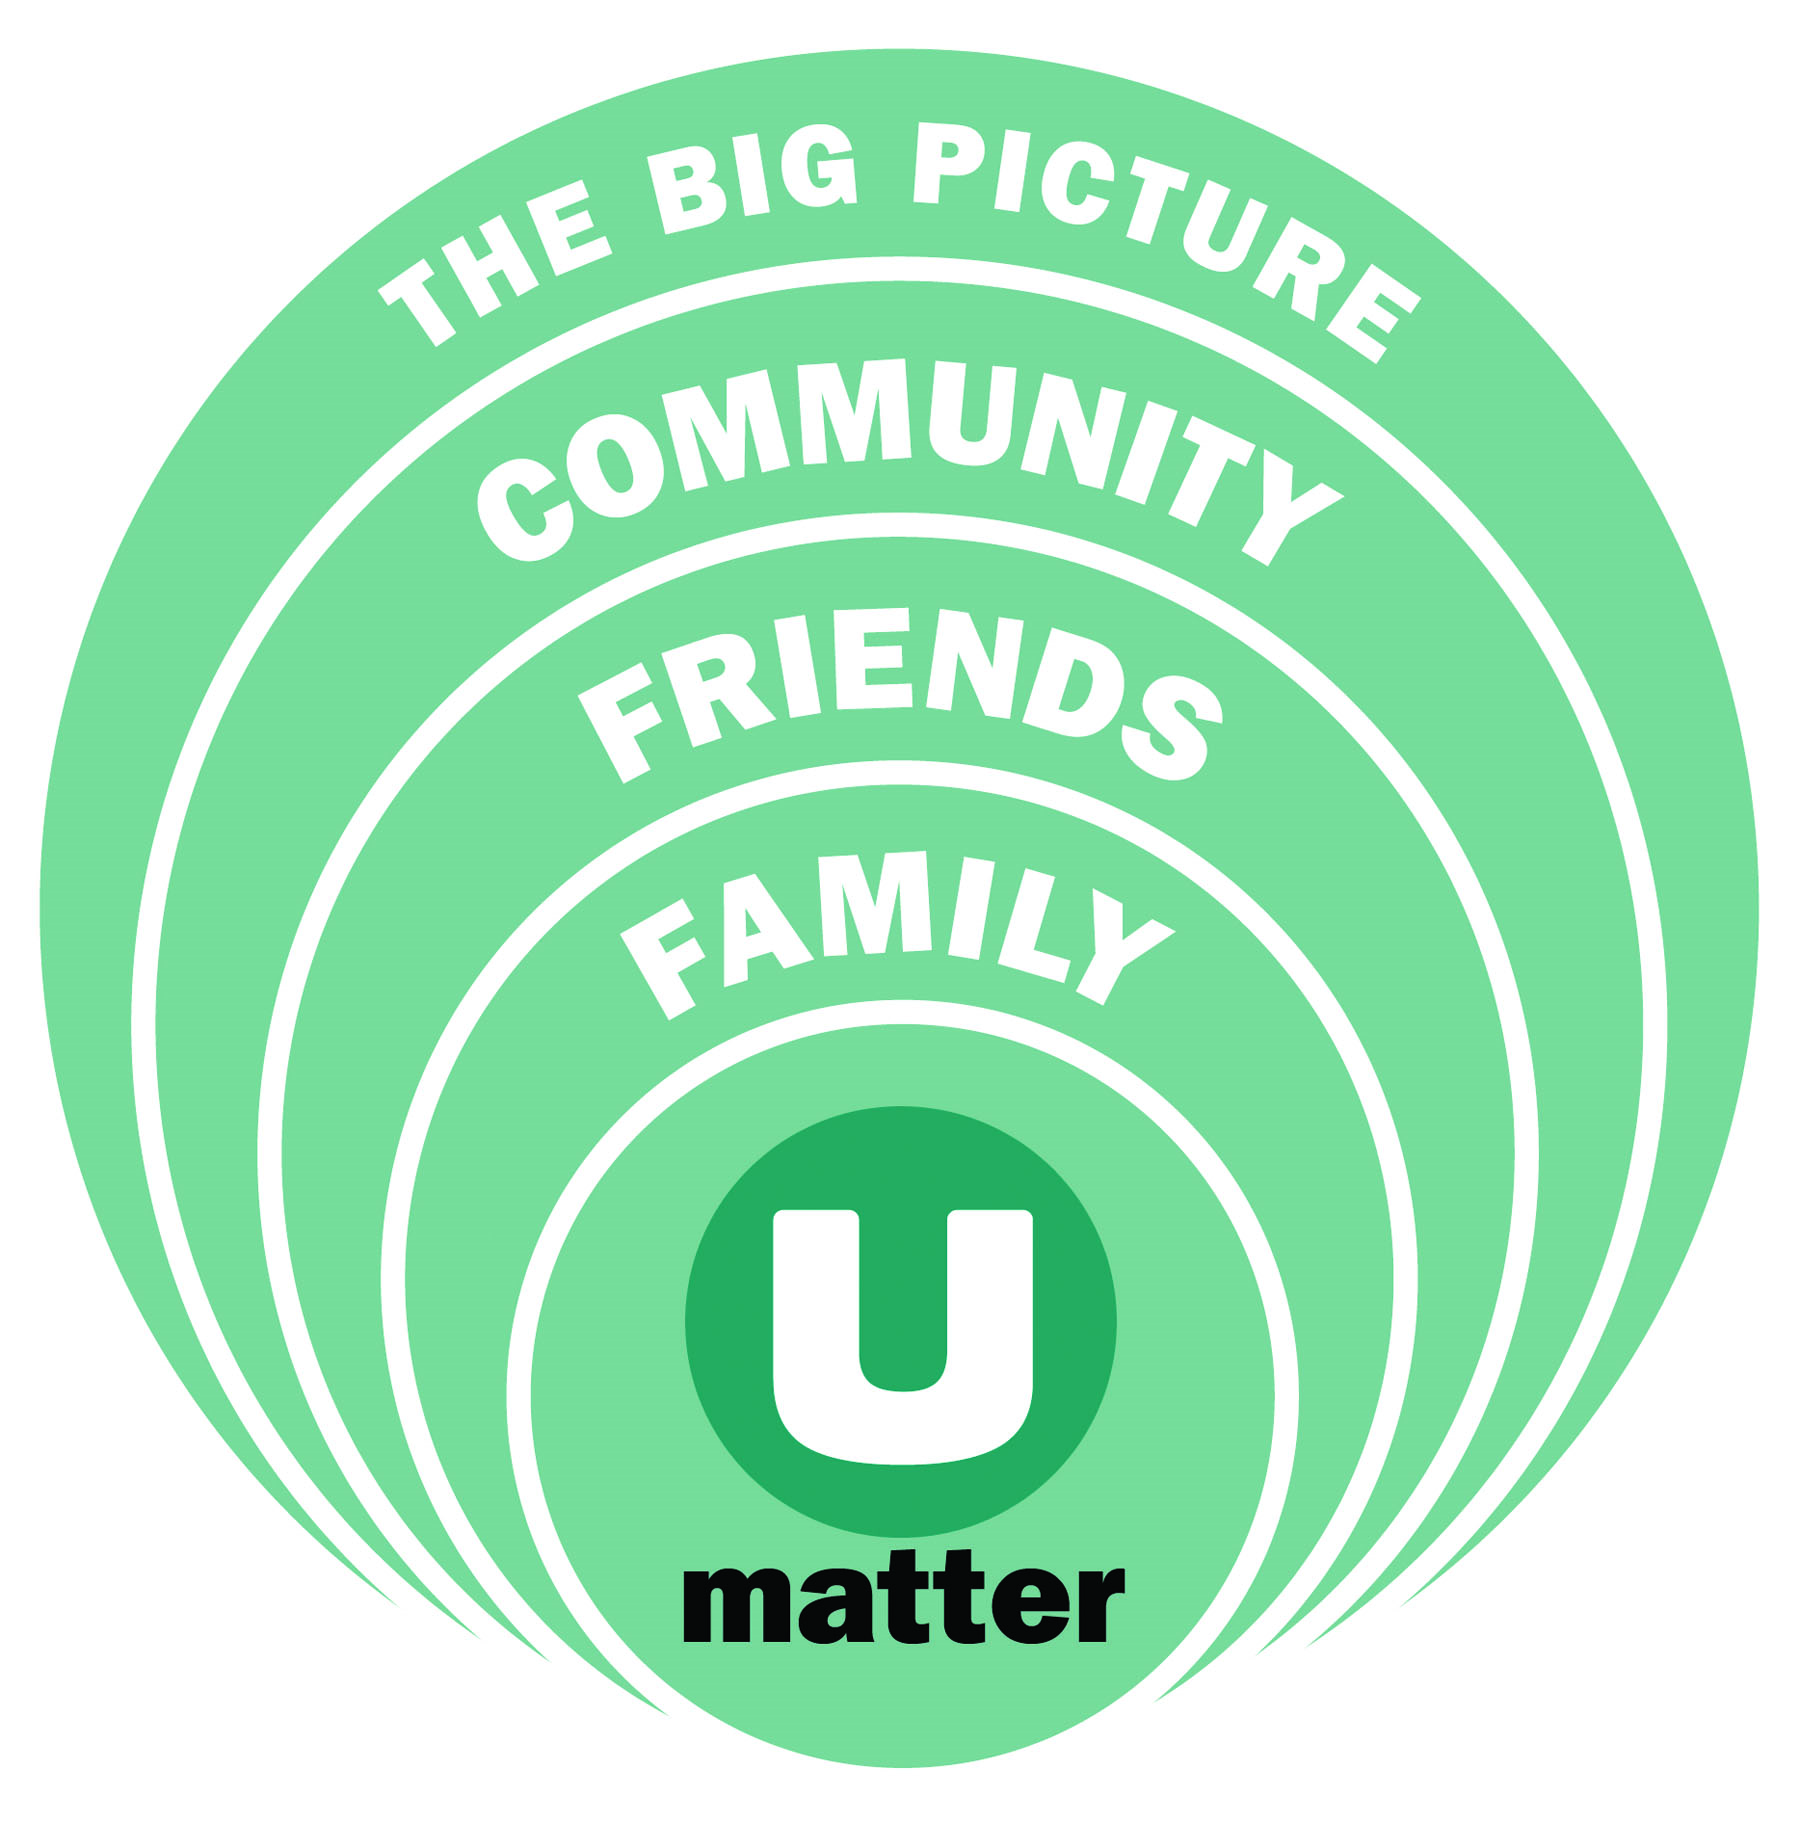 The Big Picture - Community - Friends - Family - U Matter